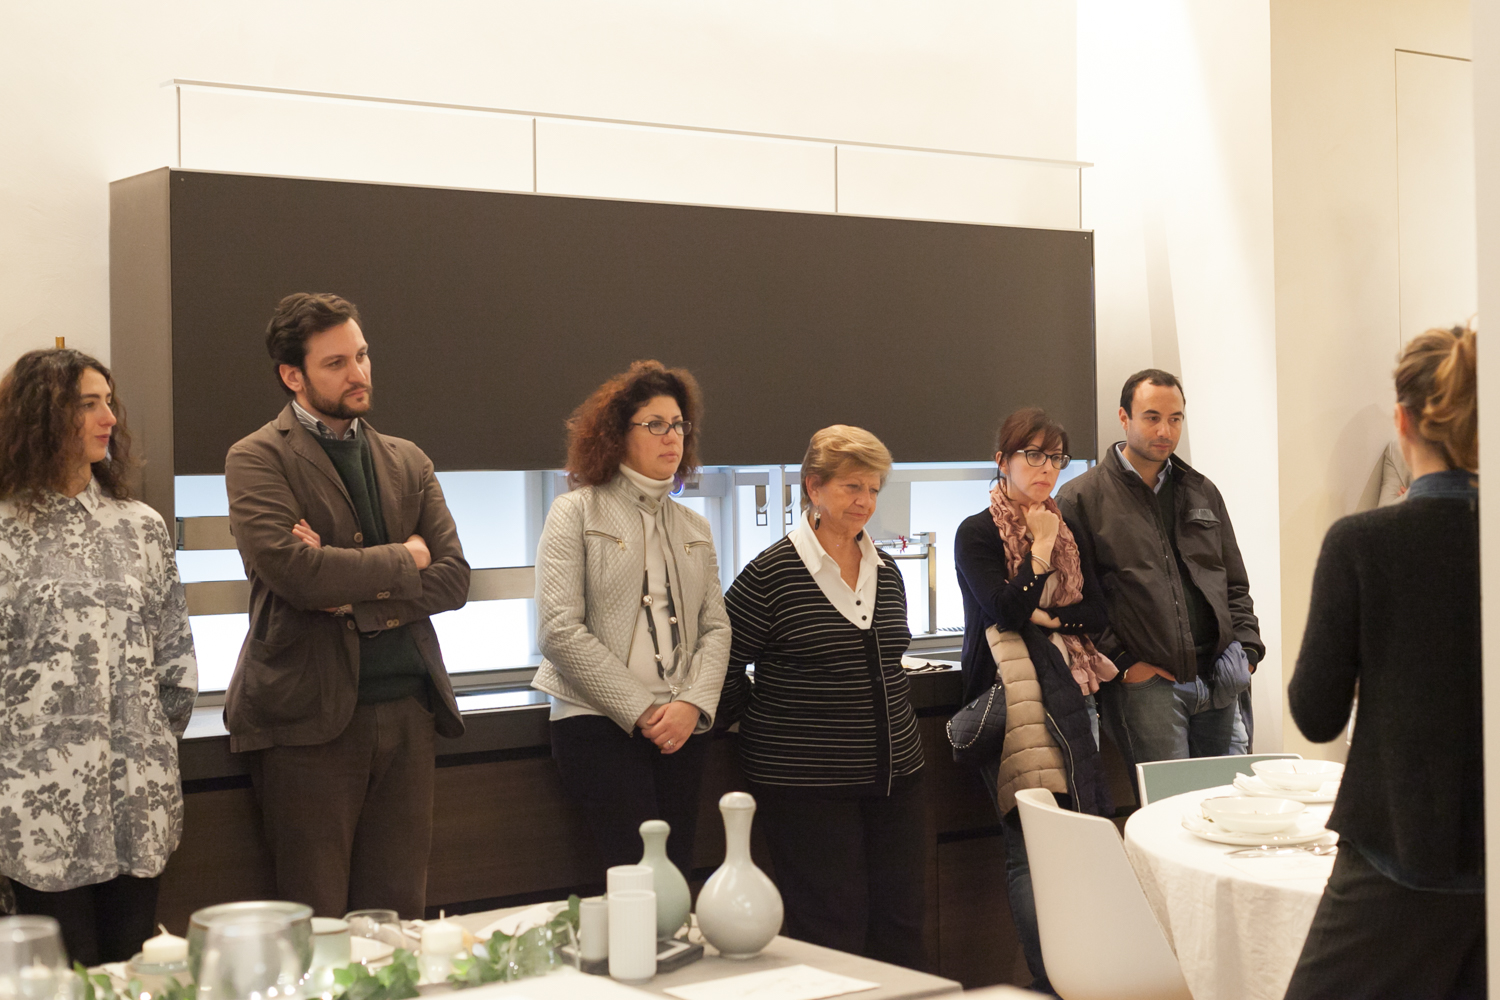 SET THE TABLE STYLING EVENTO SPAZIO MATERIAE NAPOLI FORME DI FARINA TAVOLA NATALE PHOTO (15 di 16).jpg